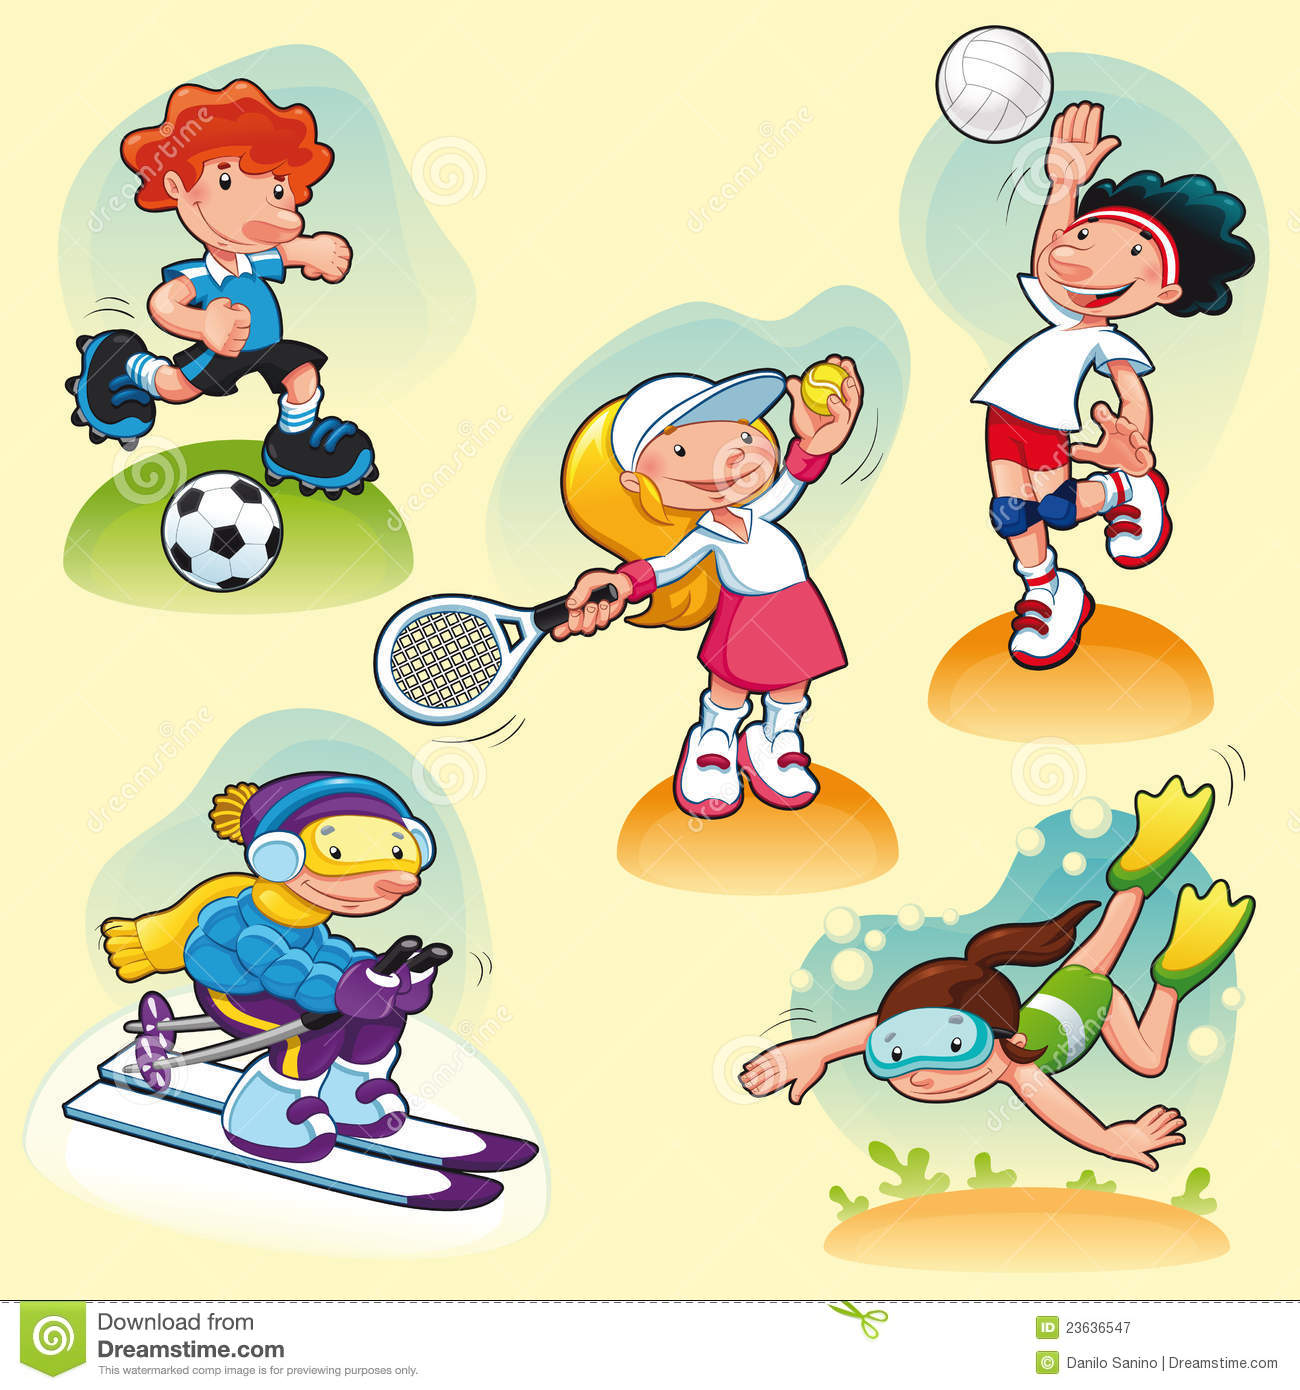 cartoon sport characters background sports practising vector illustration volleyball yellow animal tennis freepik macaw bird royalty preview crestock dreamstime shutterstock